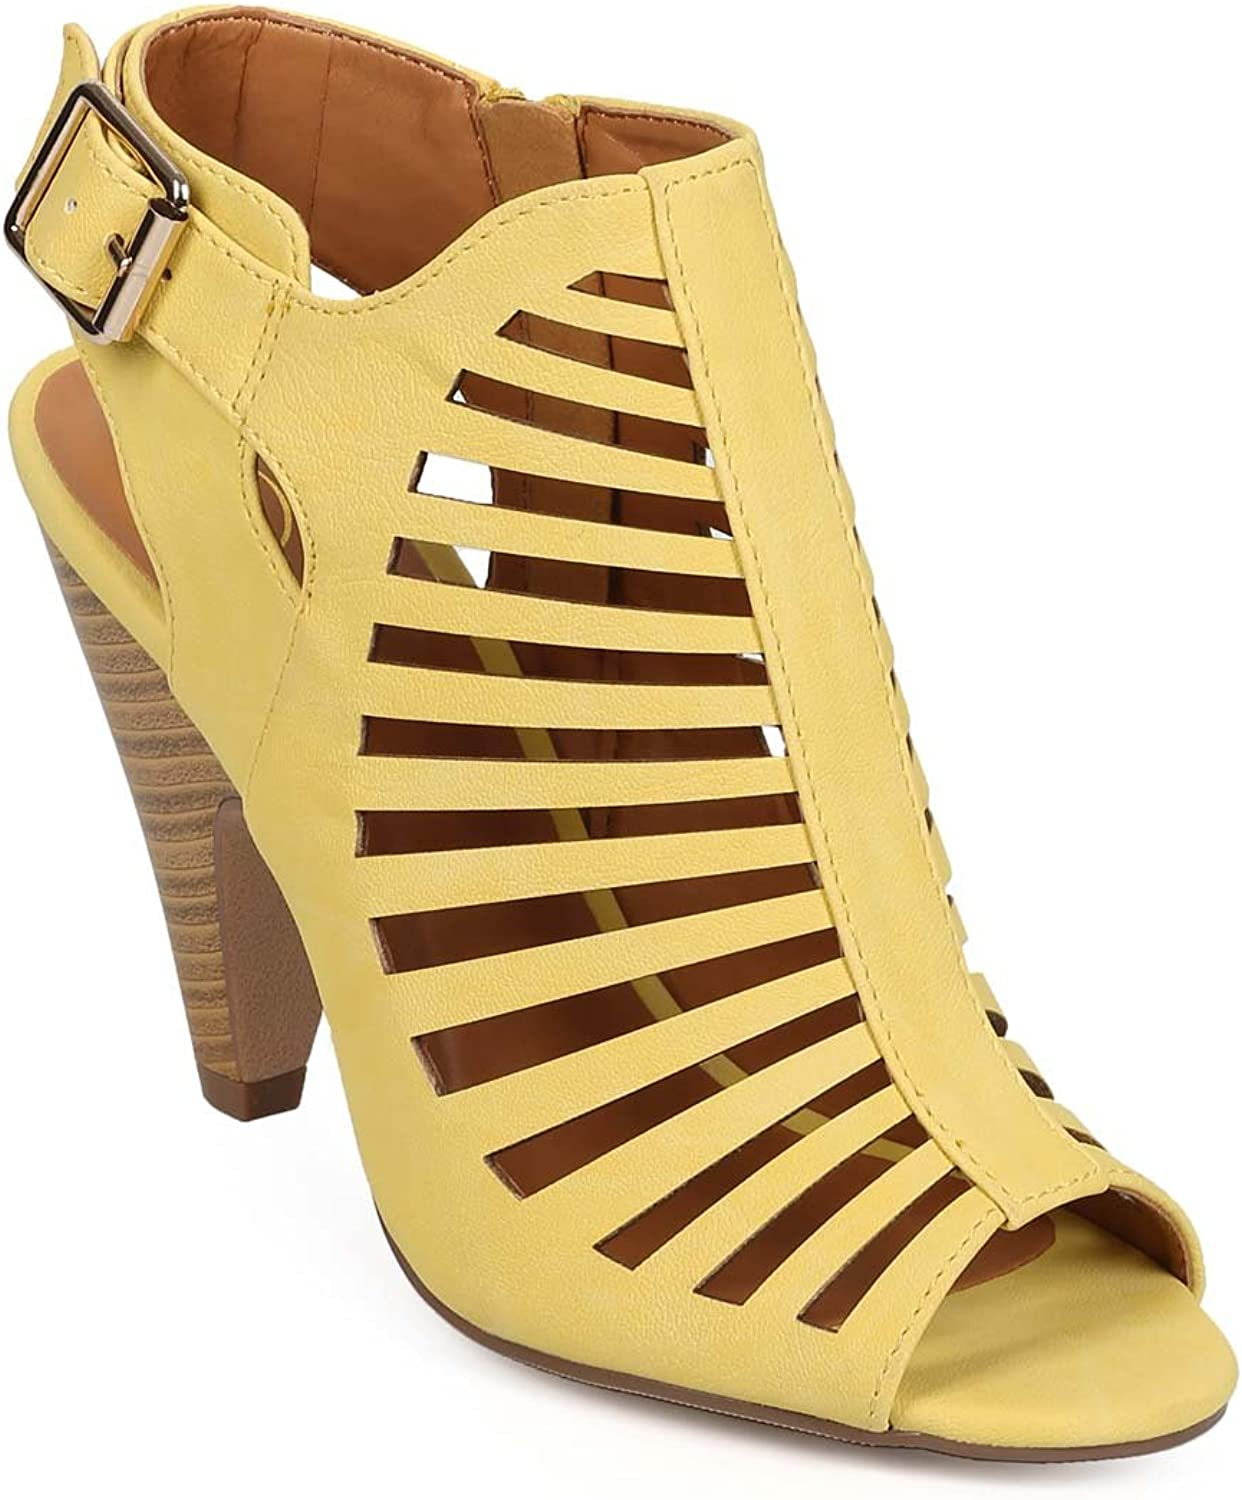 Delicious BK59 Women Leatherette Peep Toe Strappy Caged Chucky Heel Ankle Bootie Sandal - Mustard